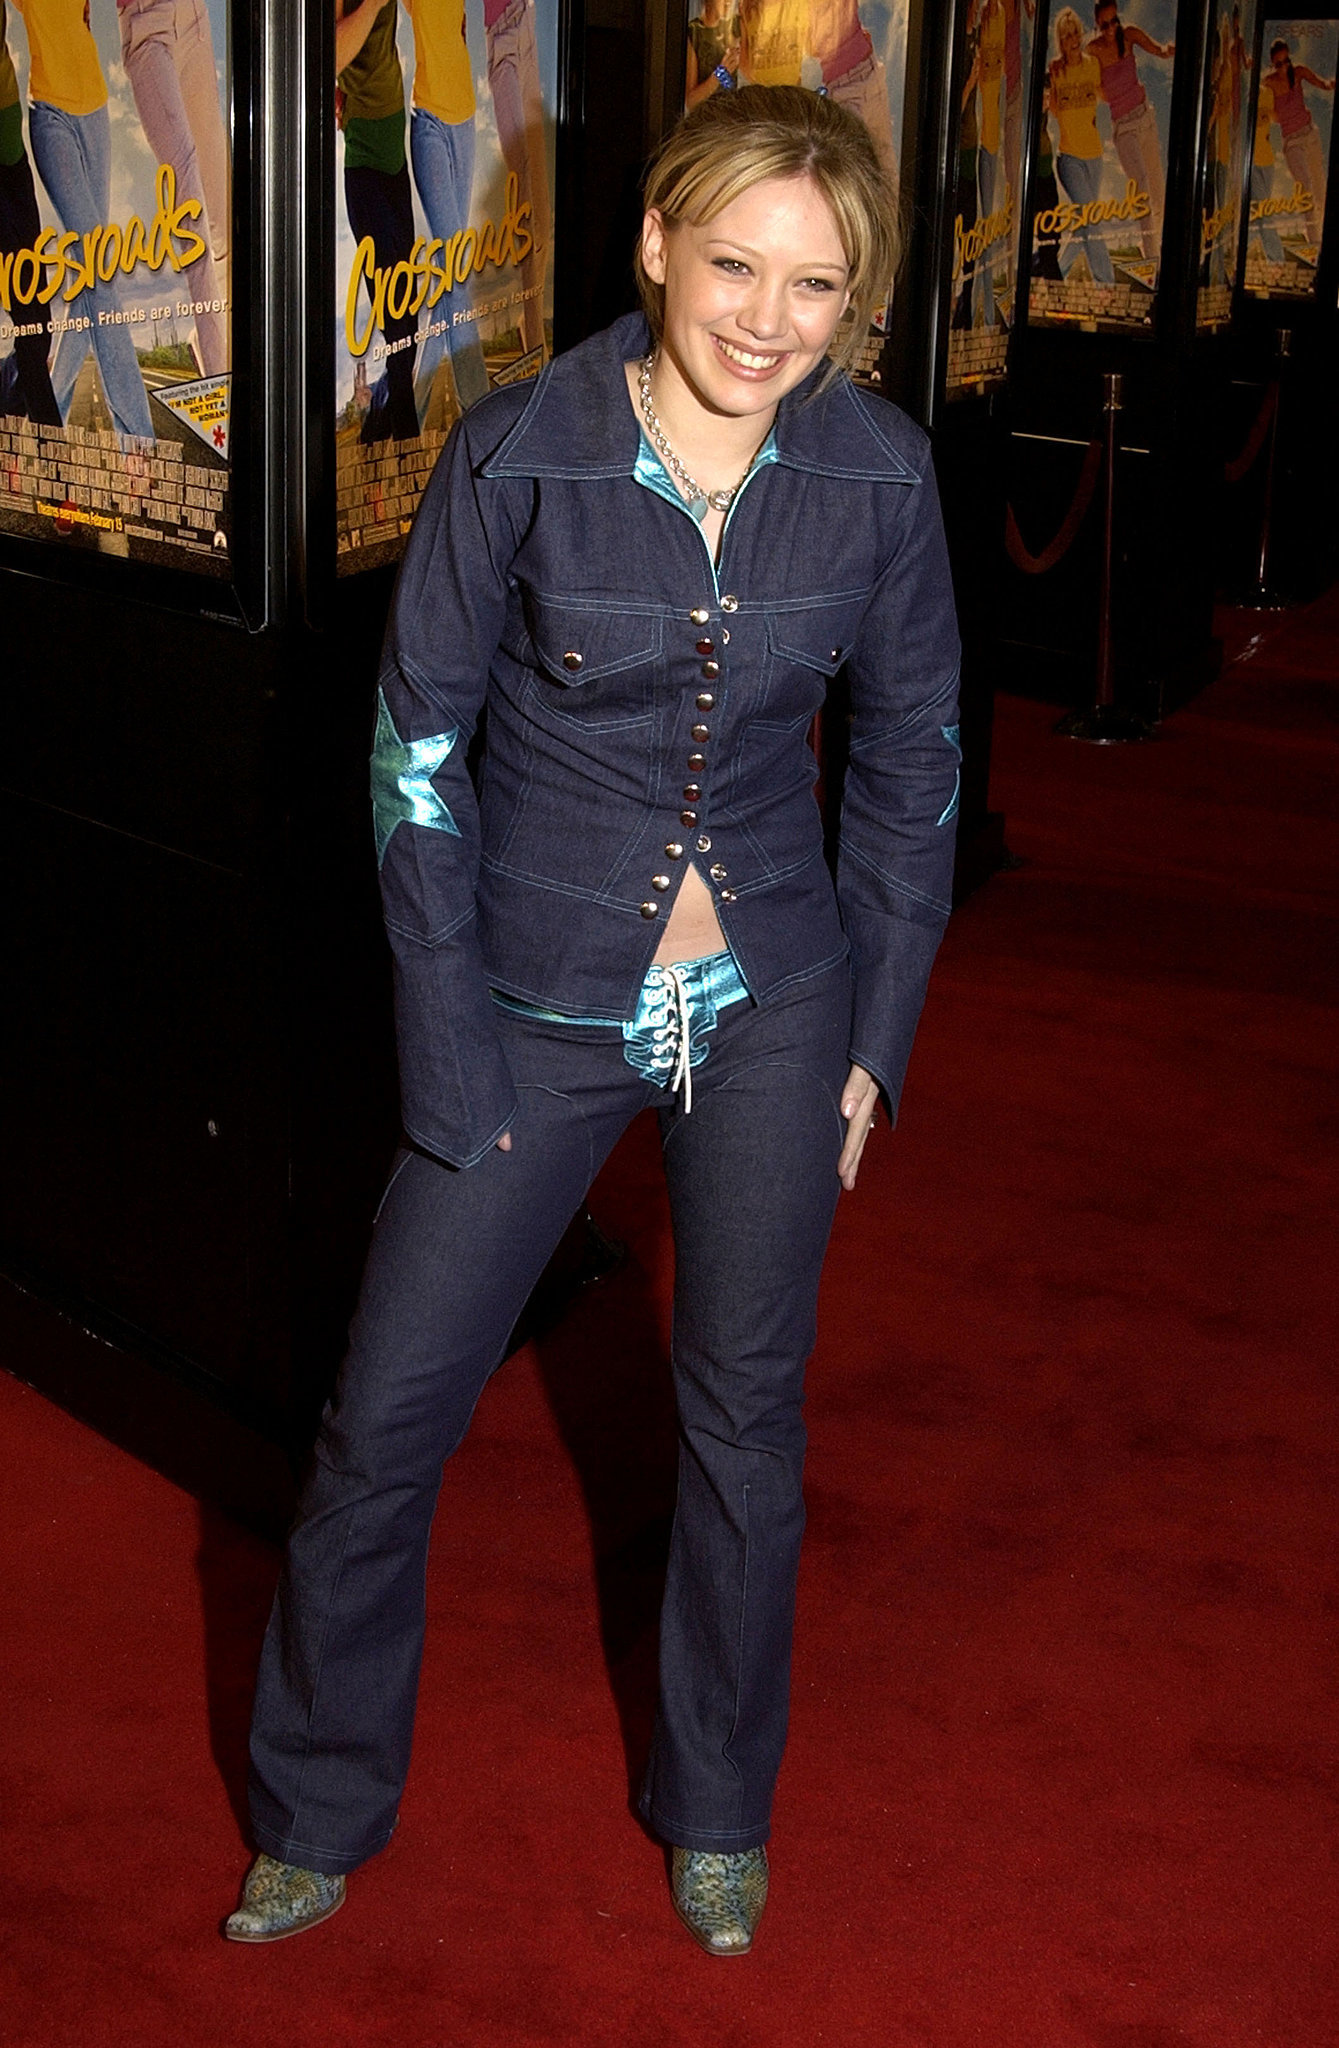 And a Lizzie McGuire-era Hilary Duff rocked lace-up jeans.